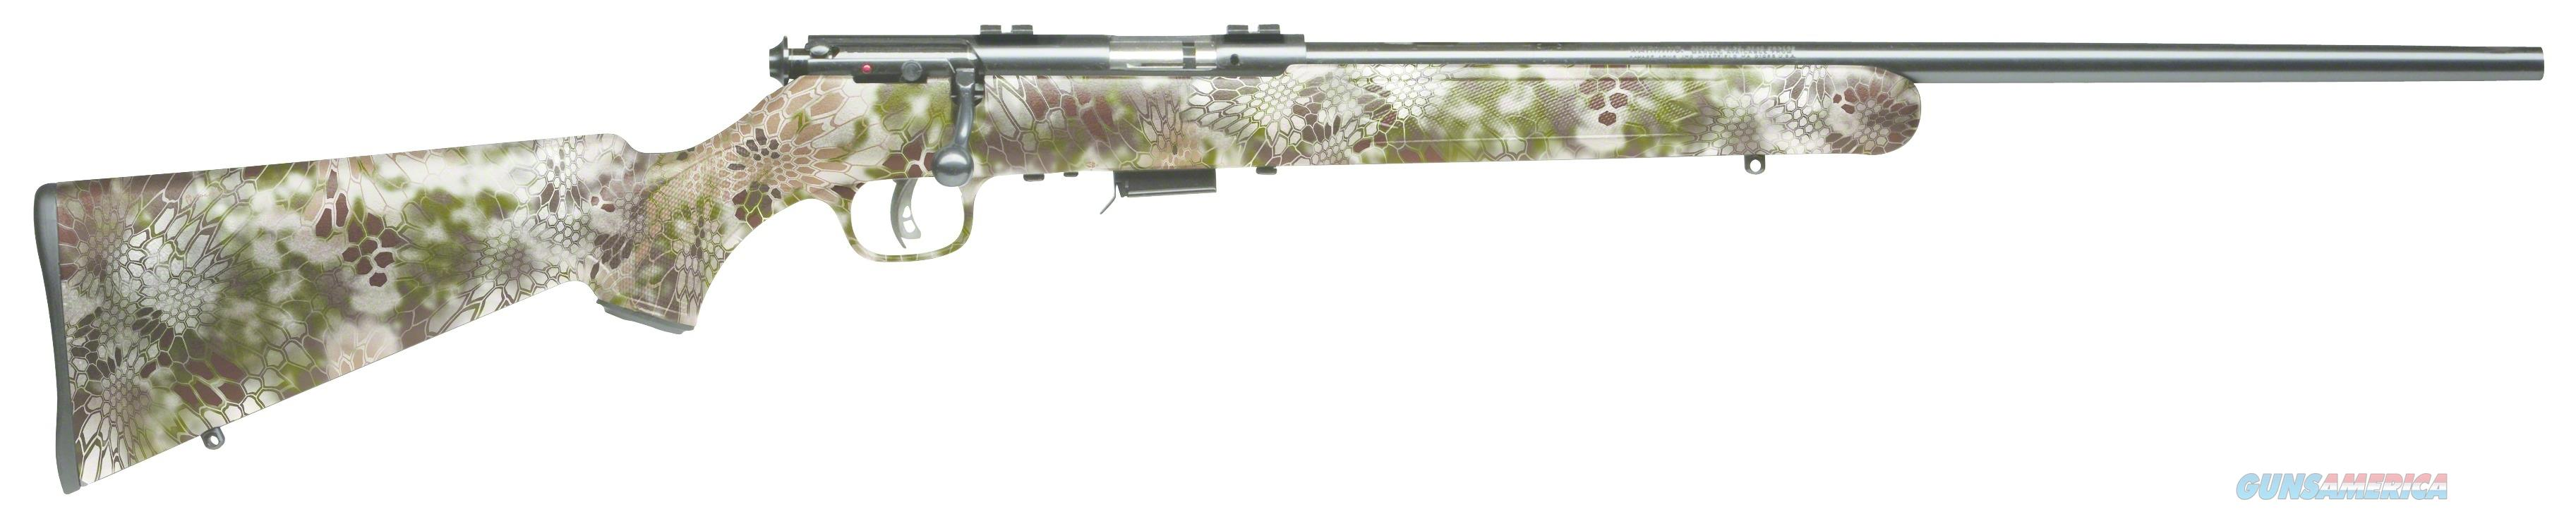 SAVAGE 93R17 BOLT RIFLE 17 HMR, RH, 21 IN, 5+1 RND, ACCU-TRIGGER 96824  Guns > Rifles > S Misc Rifles